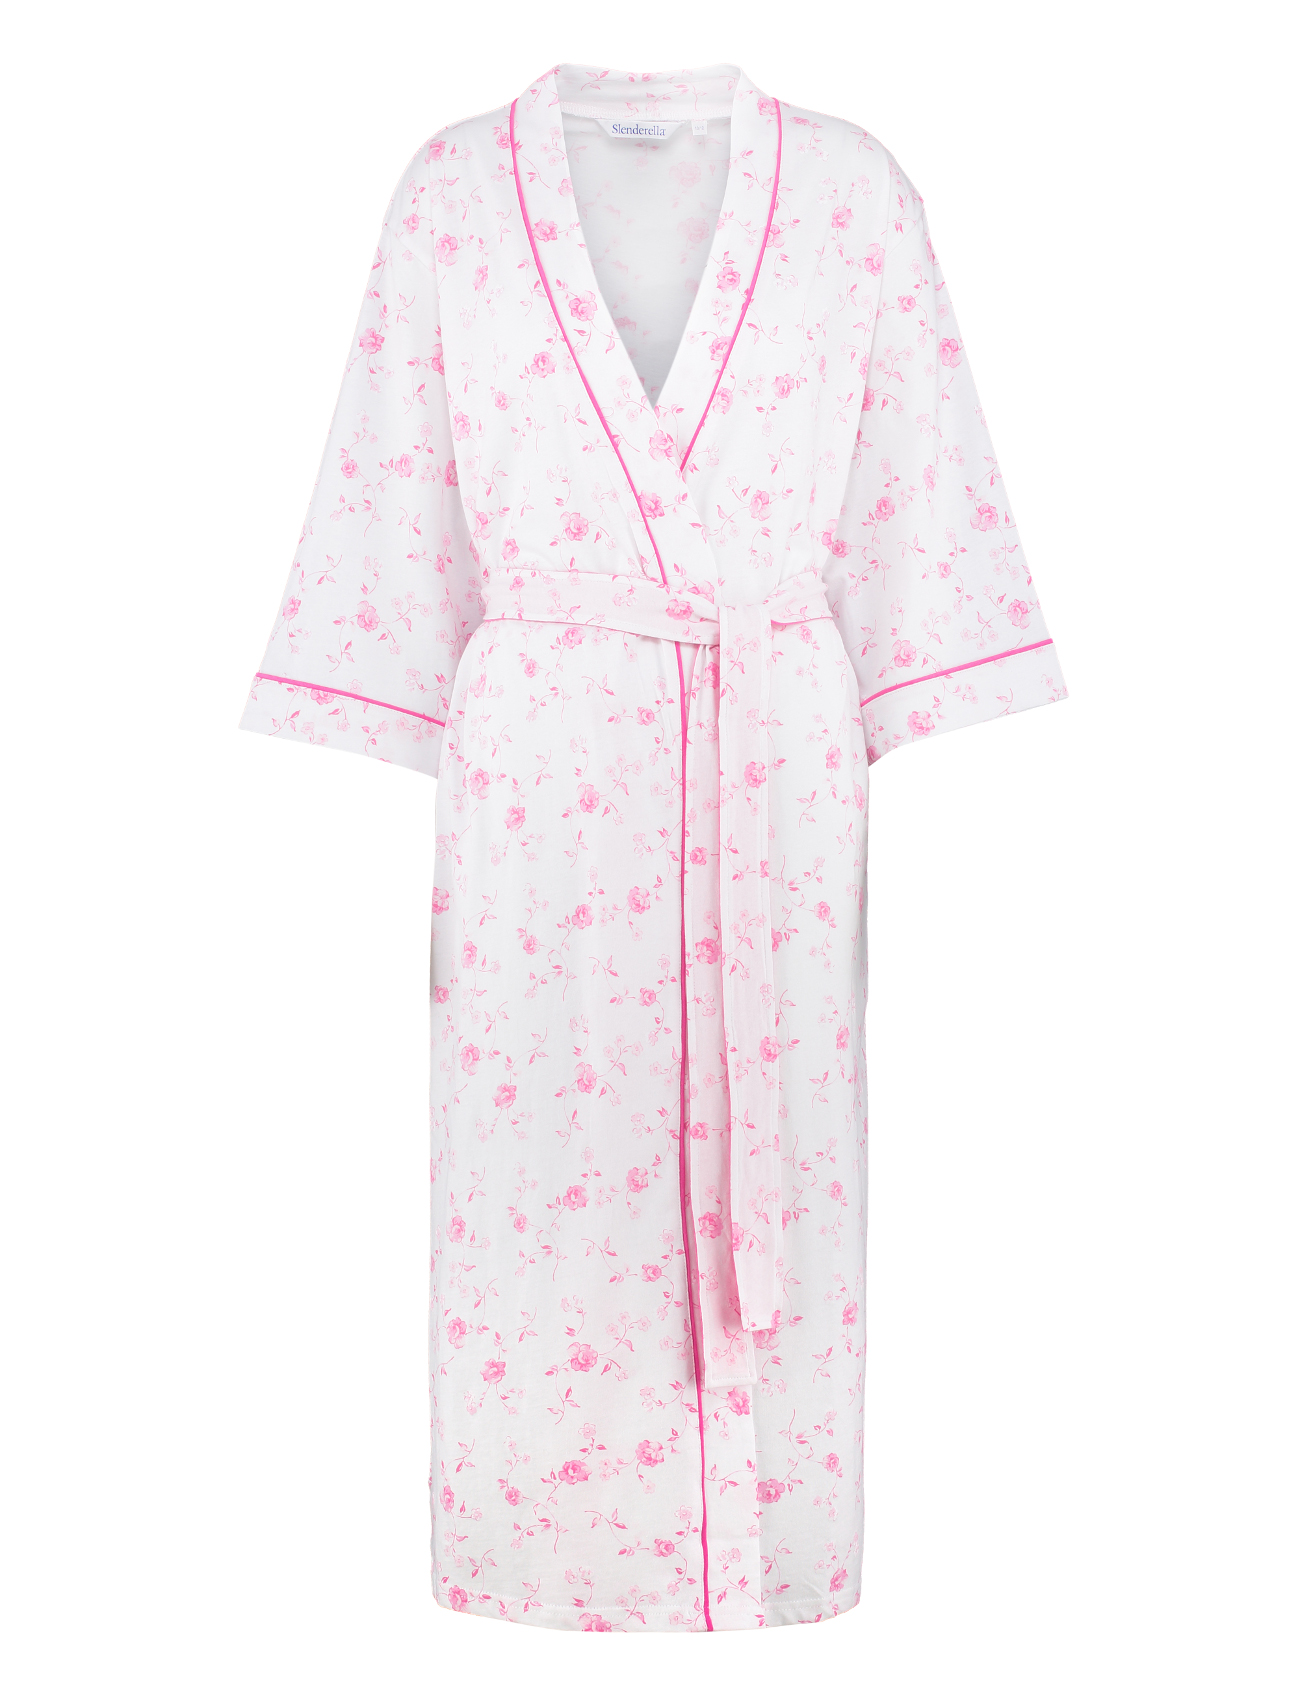 99629cb5fda Details about Bathrobe Ladies Wrap Around Floral 3 4 Sleeve Womens 100%  Cotton Dressing Gown